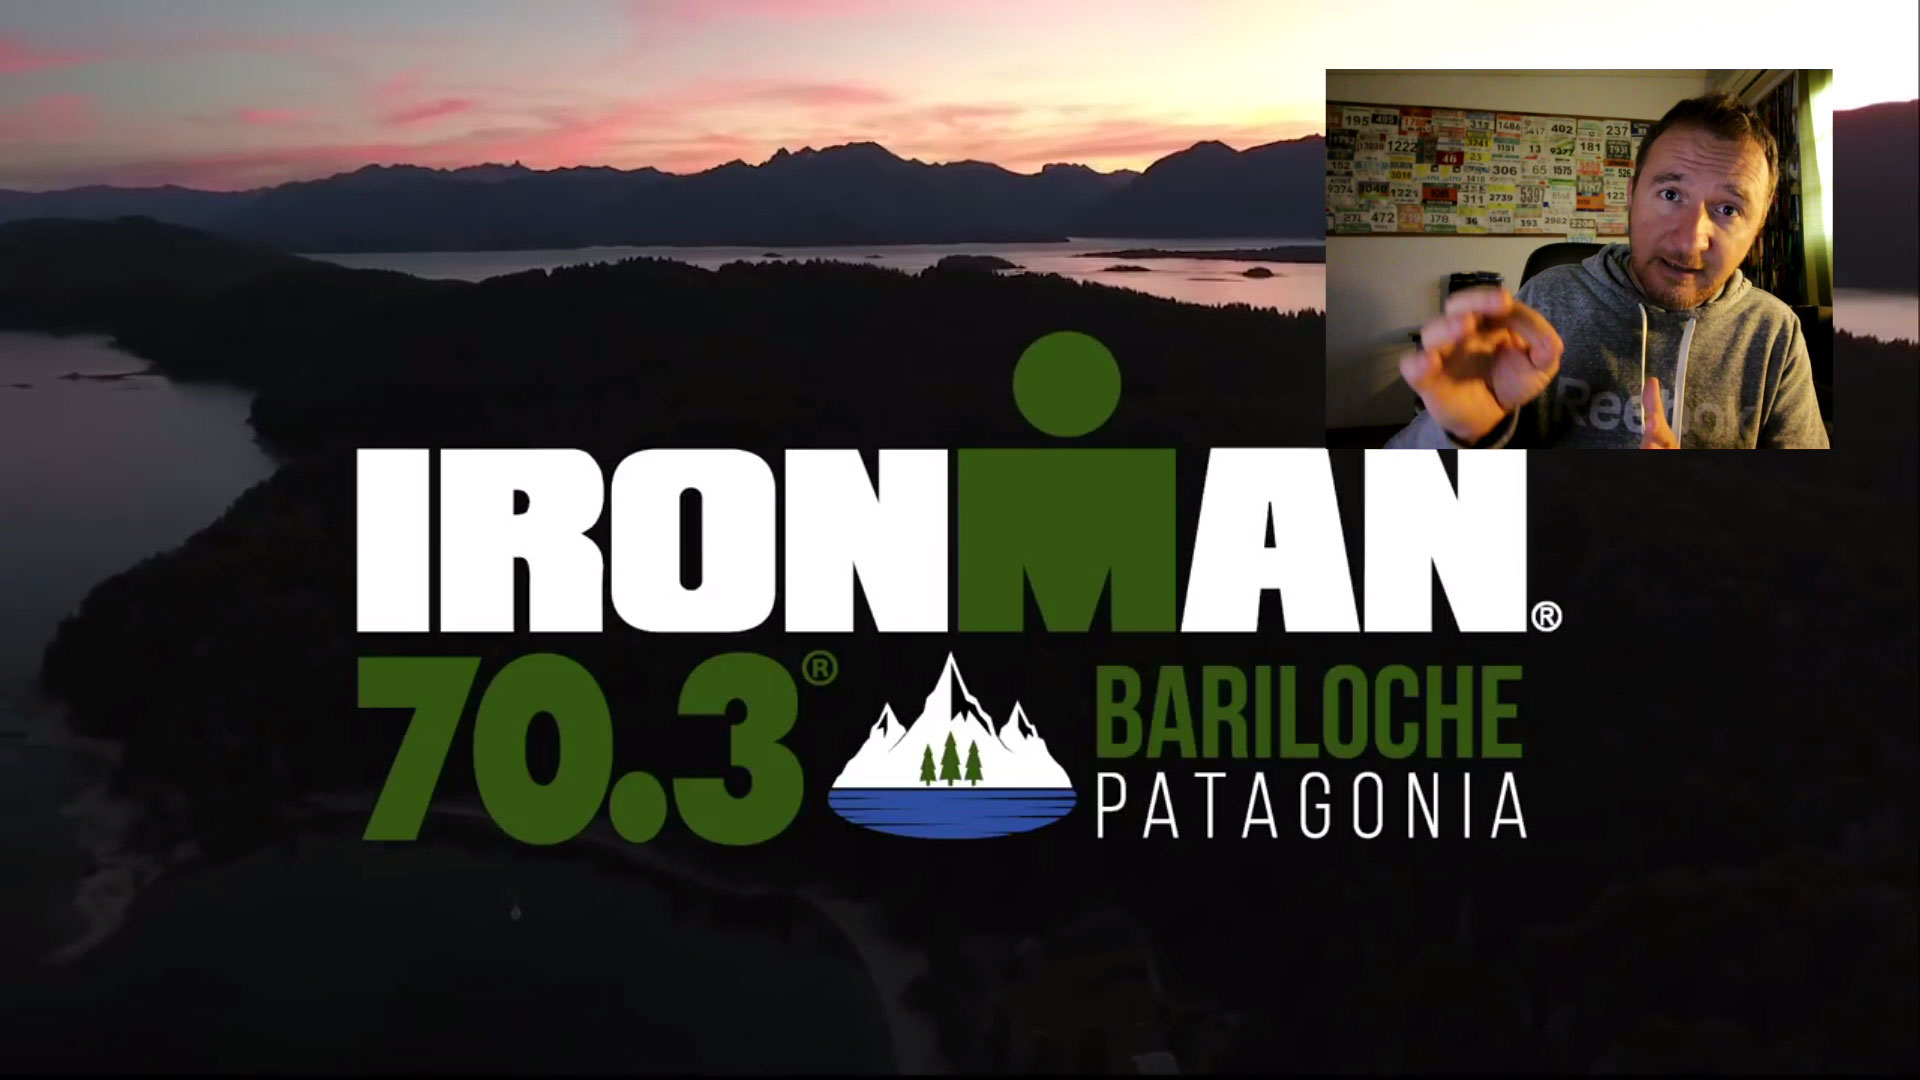 INSCRIPCIONES IRONMAN 70.3 BARILOCHE – Corriendo por la Web, Episodio #8